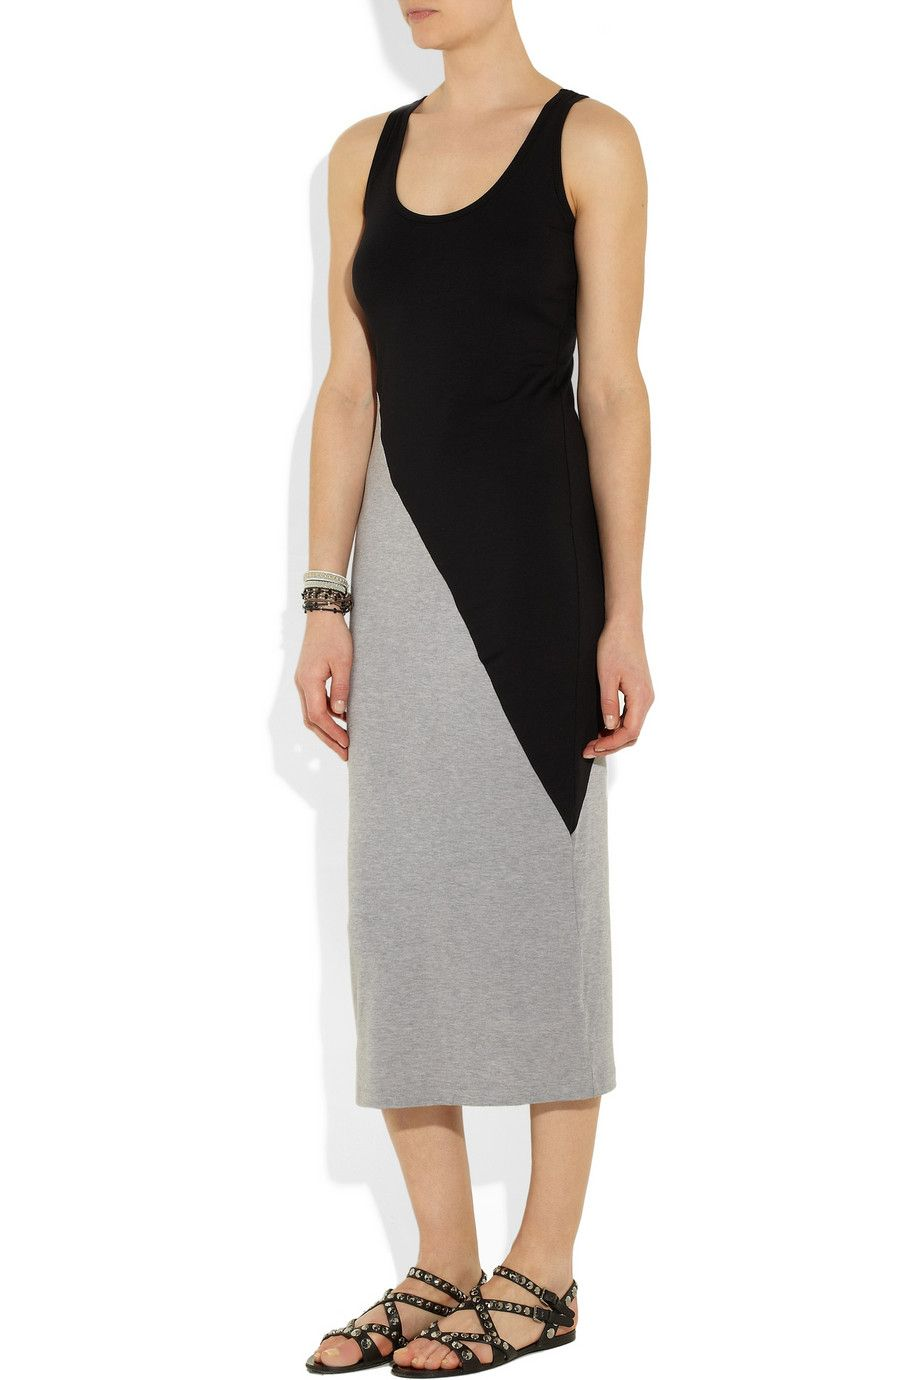 Kain | Brenna two-tone stretch-jersey dress | NET-A-PORTER.COM